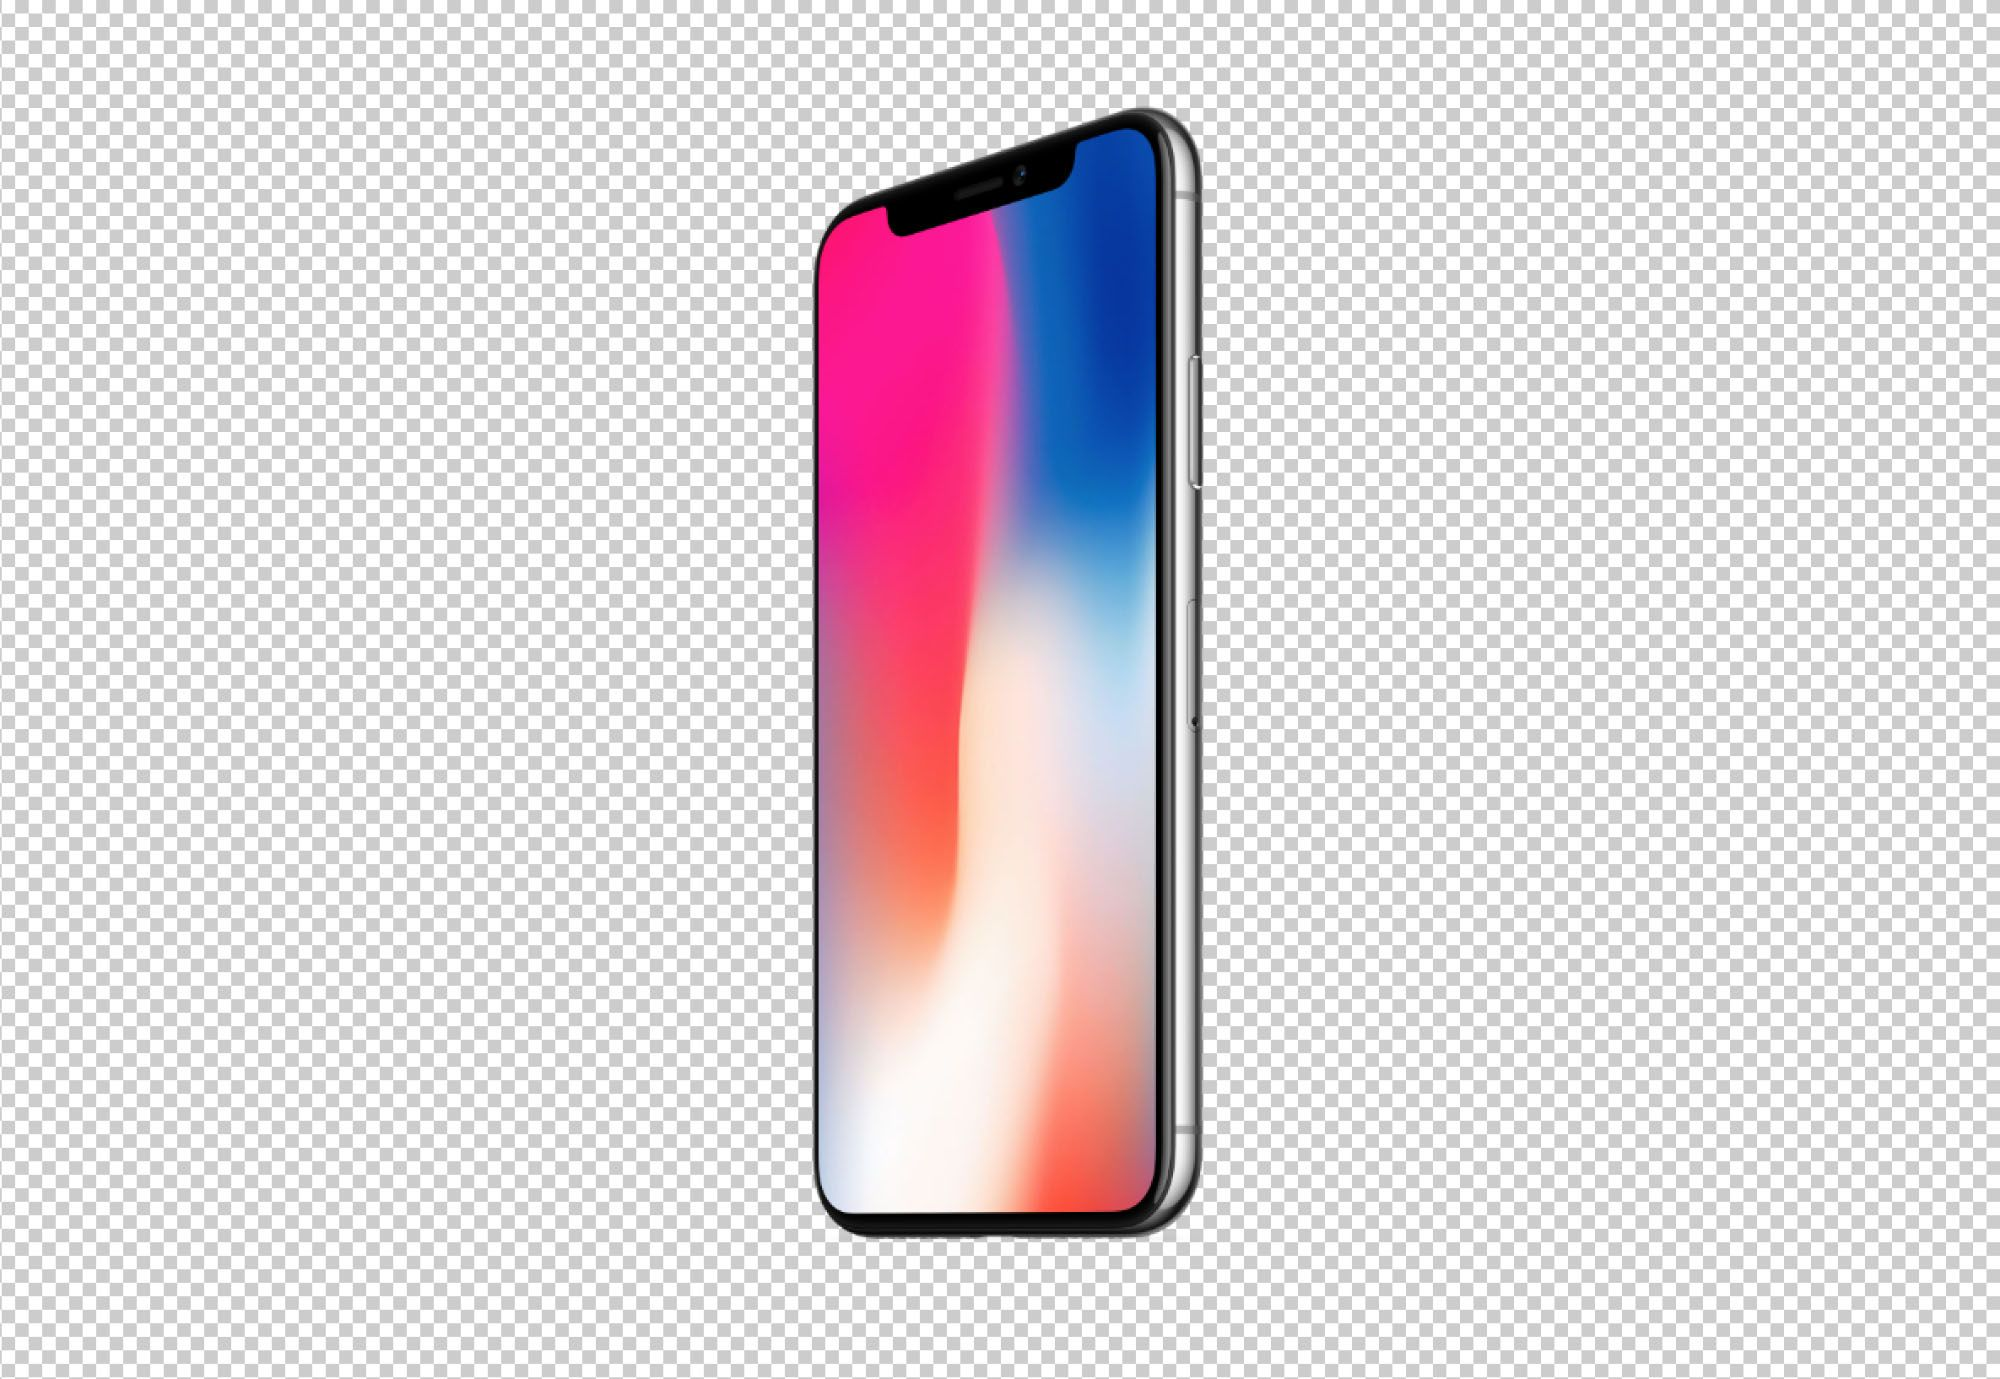 Download Iphone X Perspective Mockup Perspective Rendered Iphone X Mockup Offered In Photoshop Psd Format That Is Easy To Edit And M Iphone Free Iphone Ios App Design